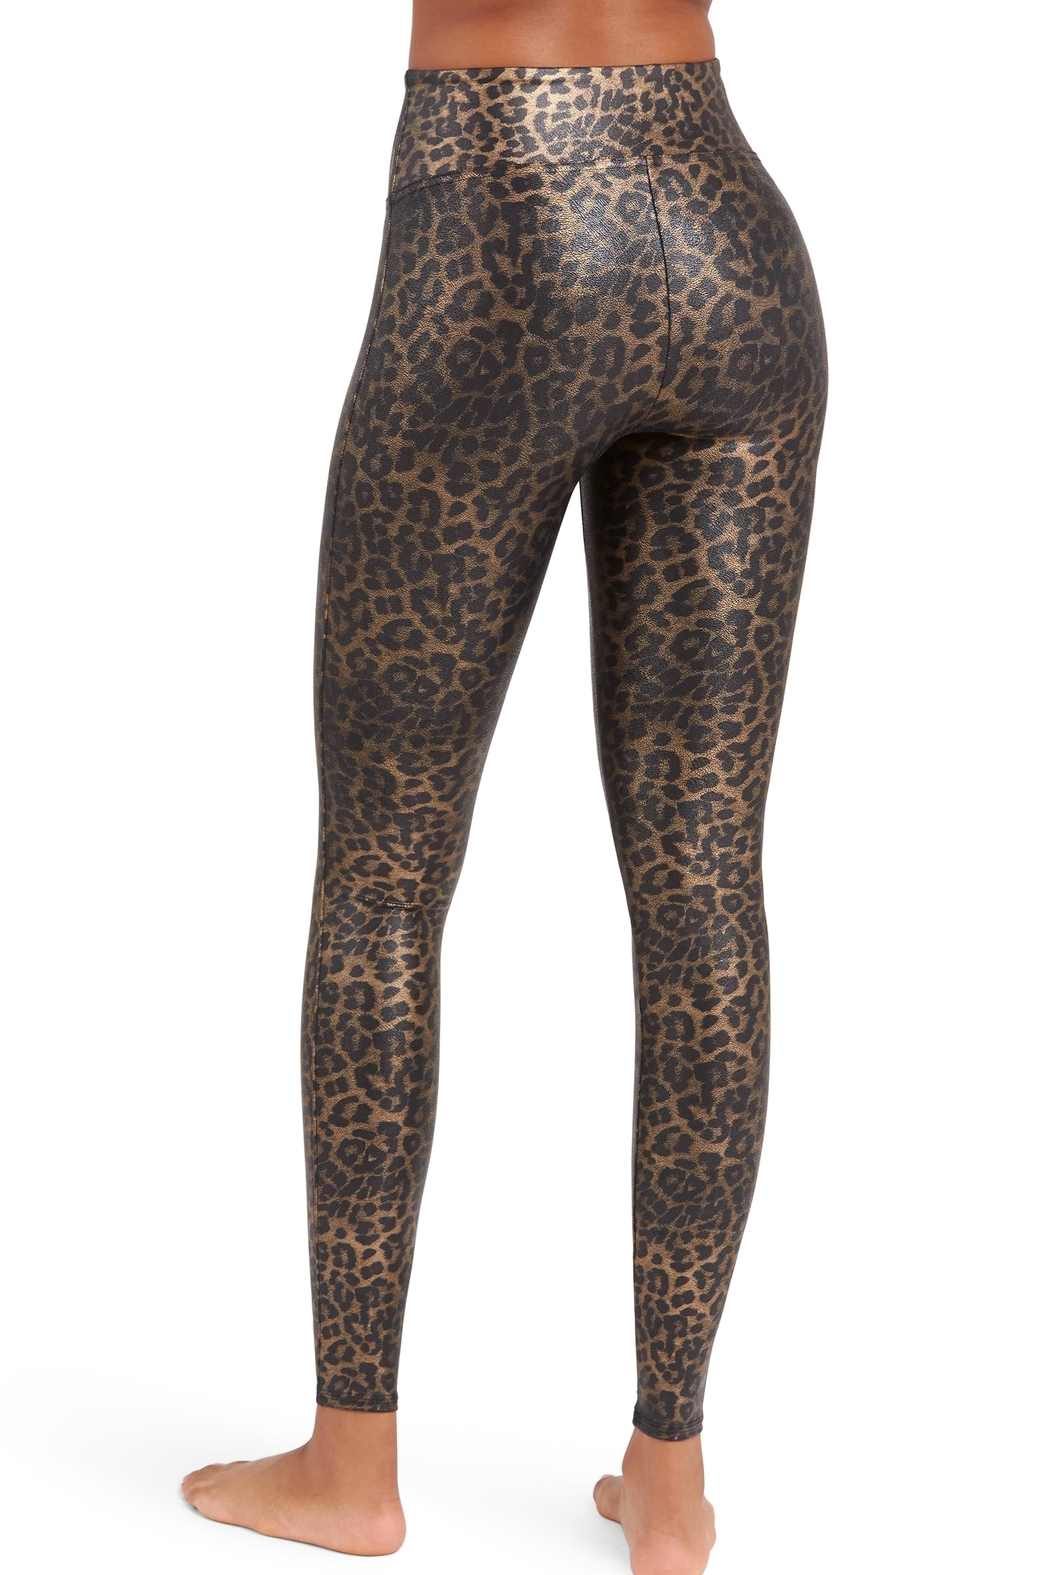 Spanx Leopard Faux-Leather Leggings - Front Full Image